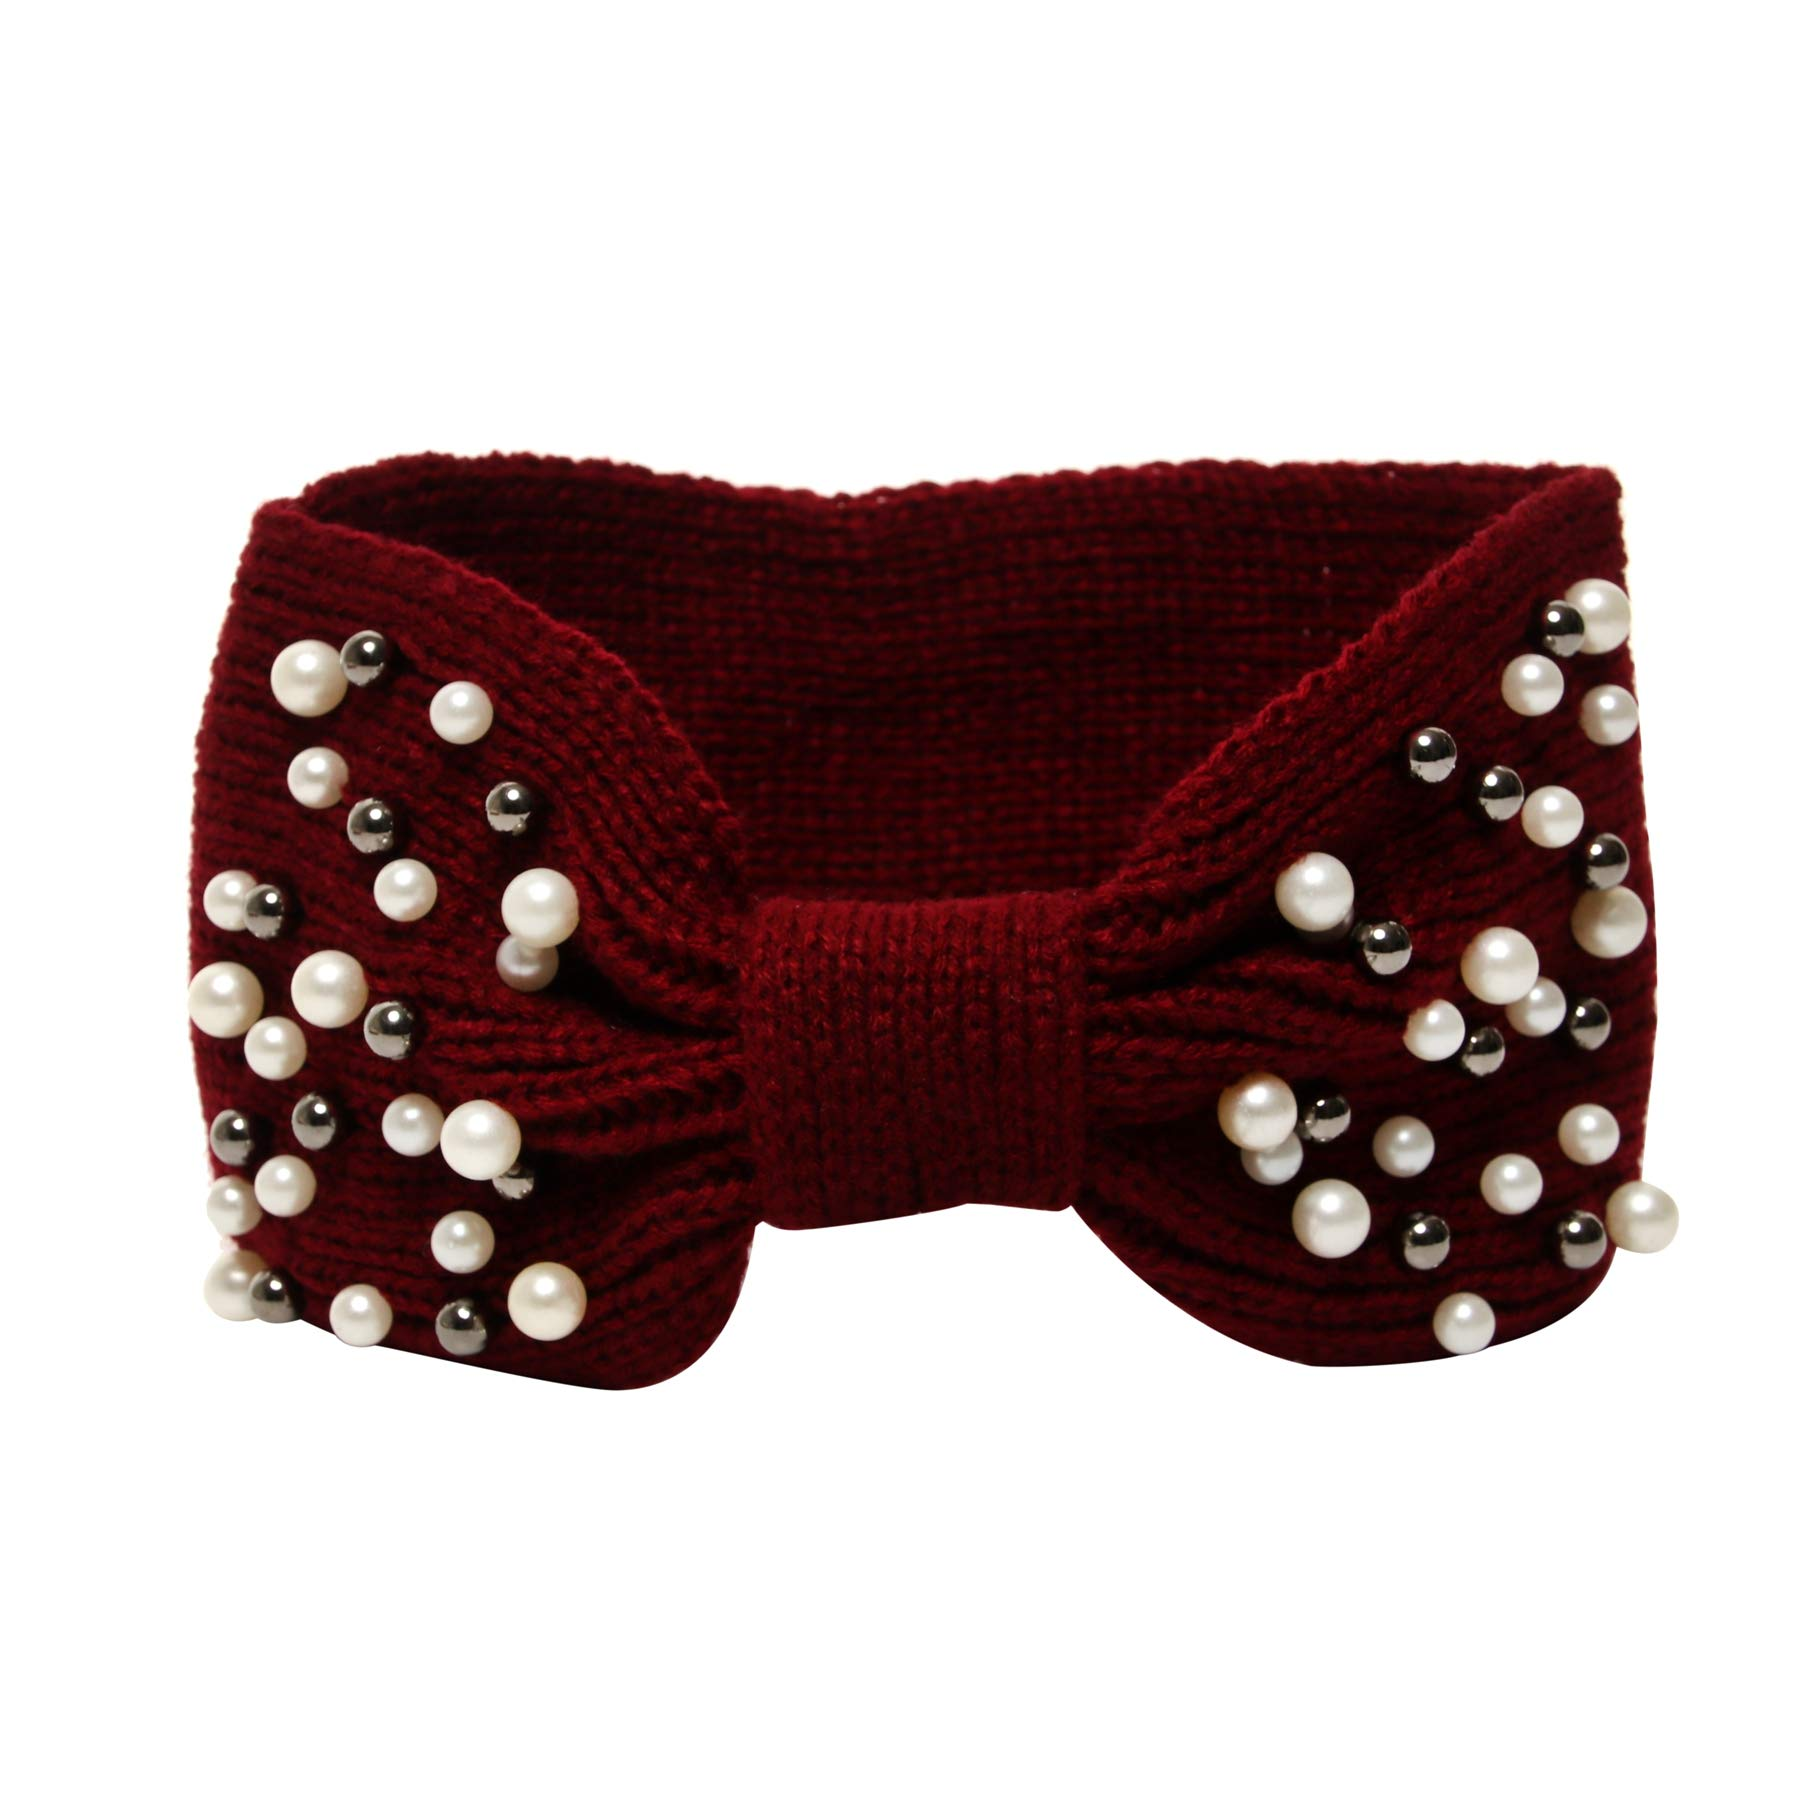 La Carrie Women's Winter Knitted Headband Chunky Crochet Ear Warmer(Burgendy)